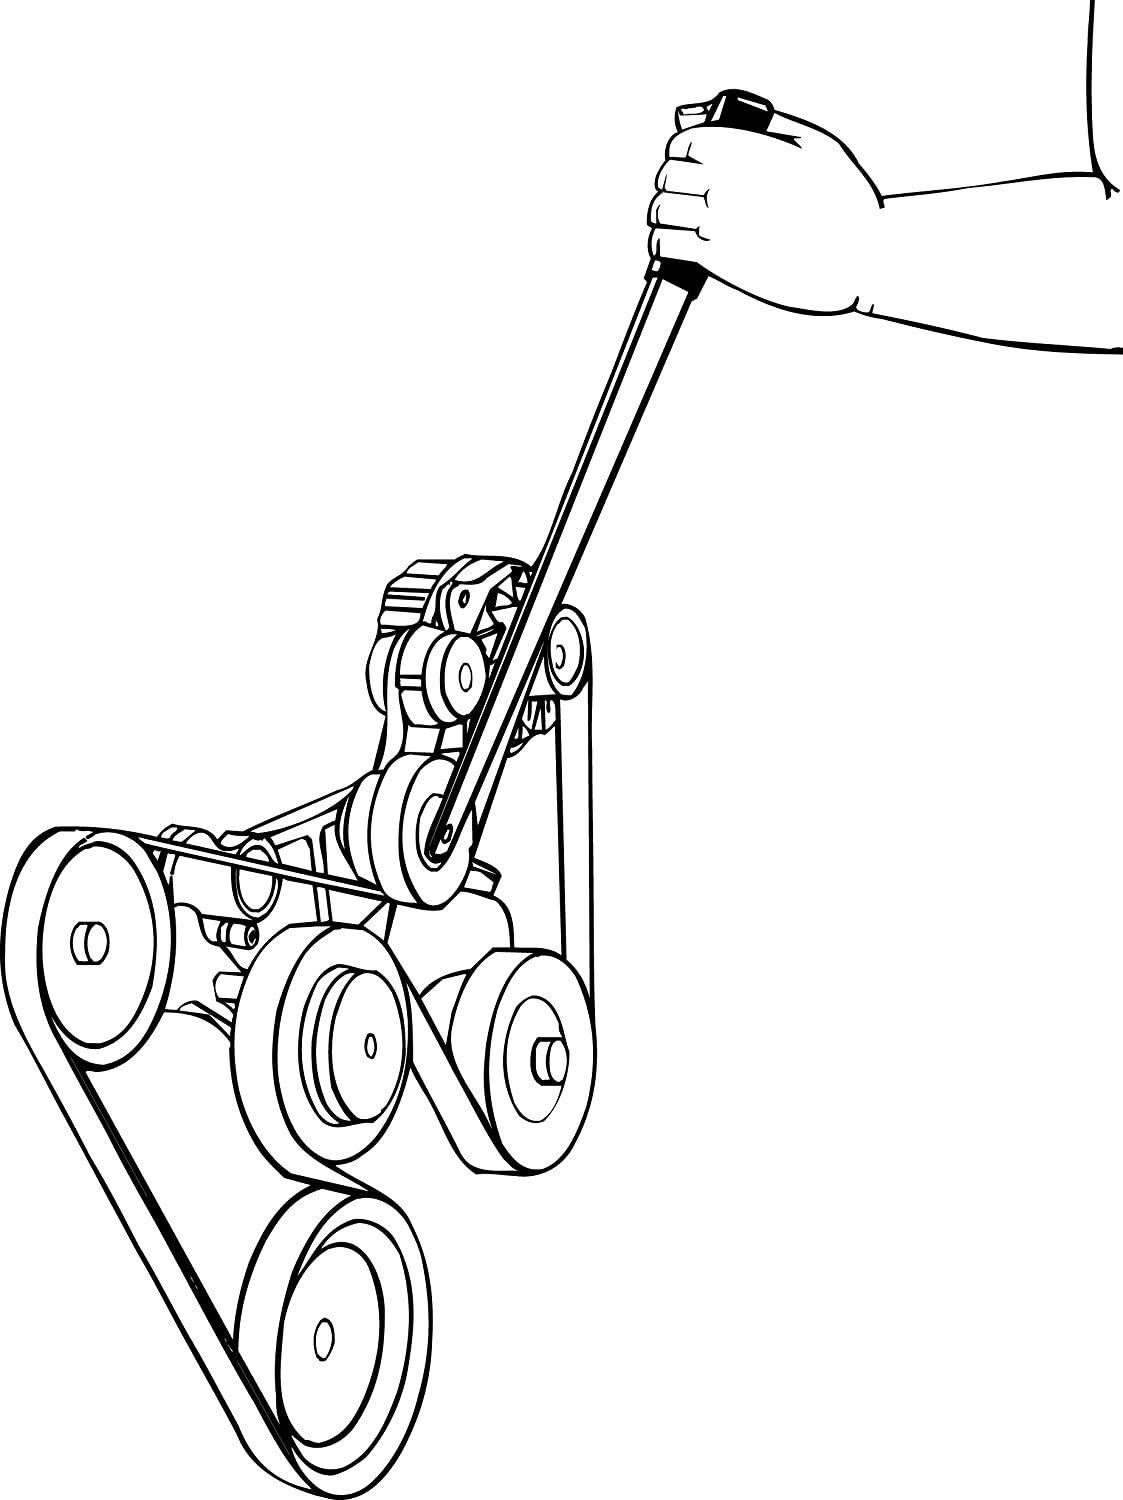 coloring pages for tool belt - photo#23